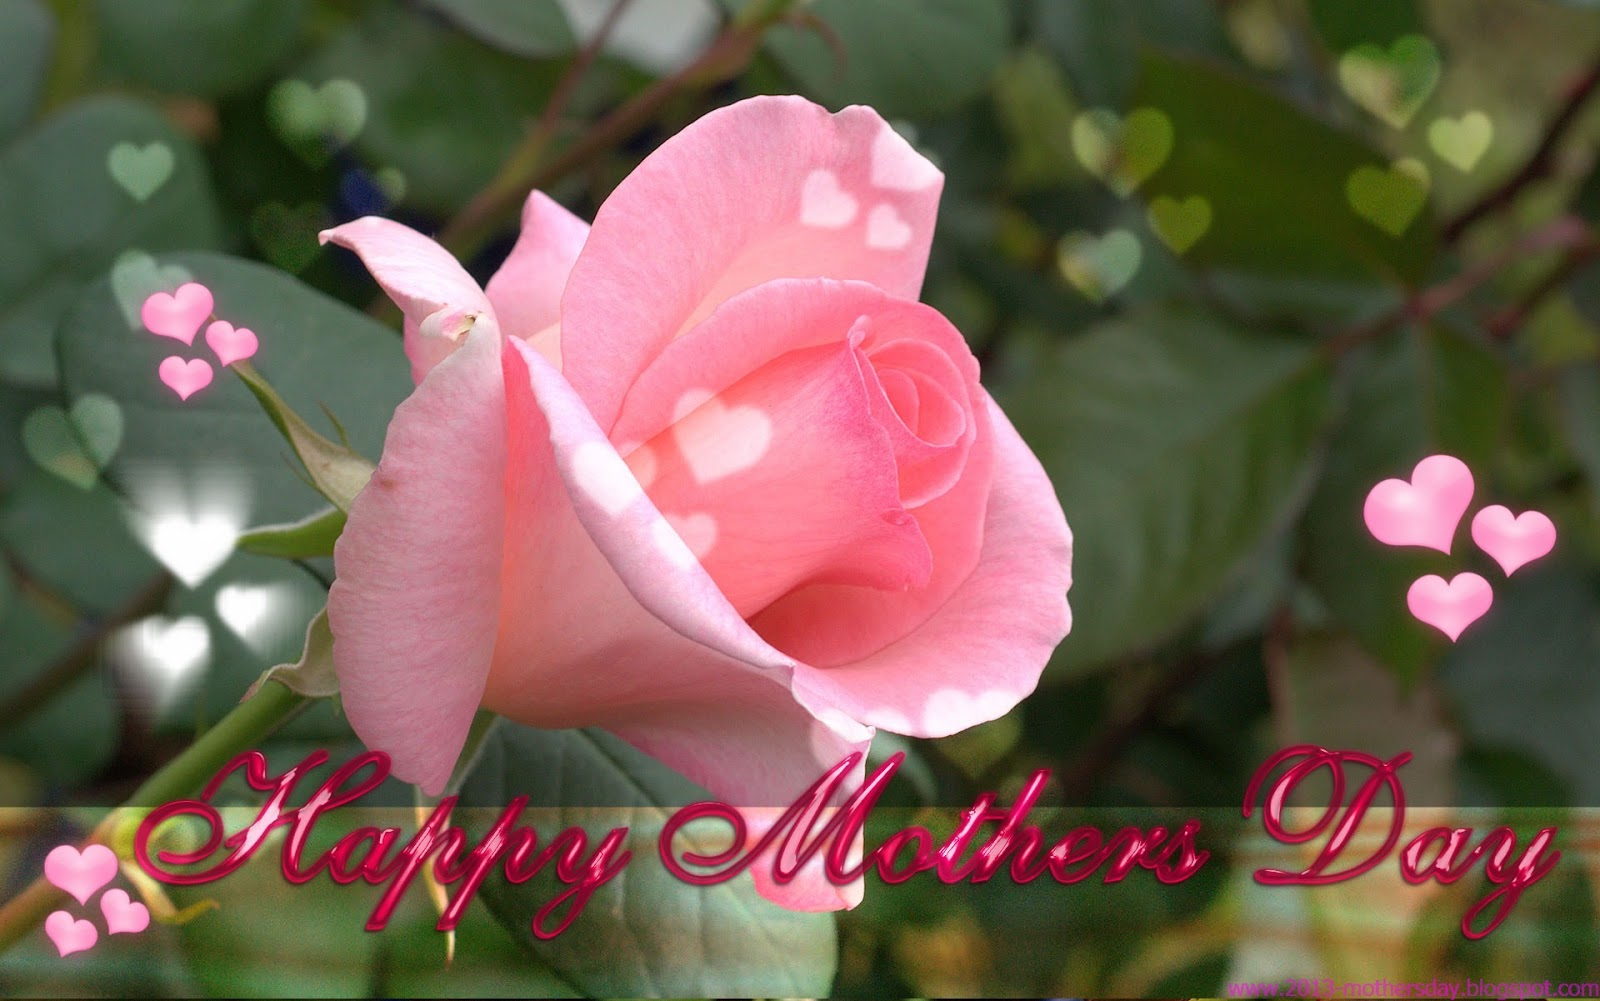 2013 Mothers Day HD Wallpaper 27